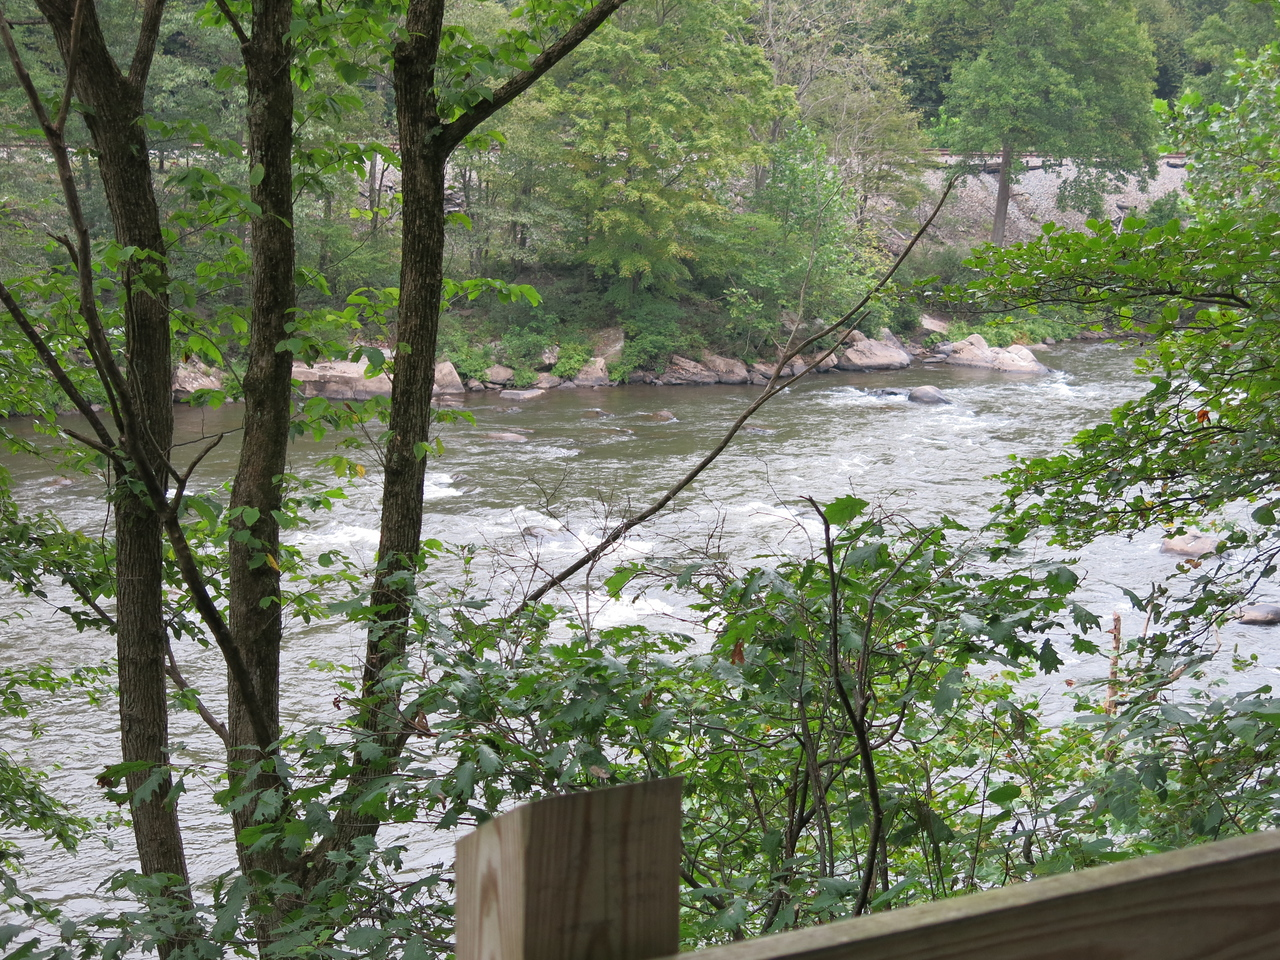 Whitewater on the Yough